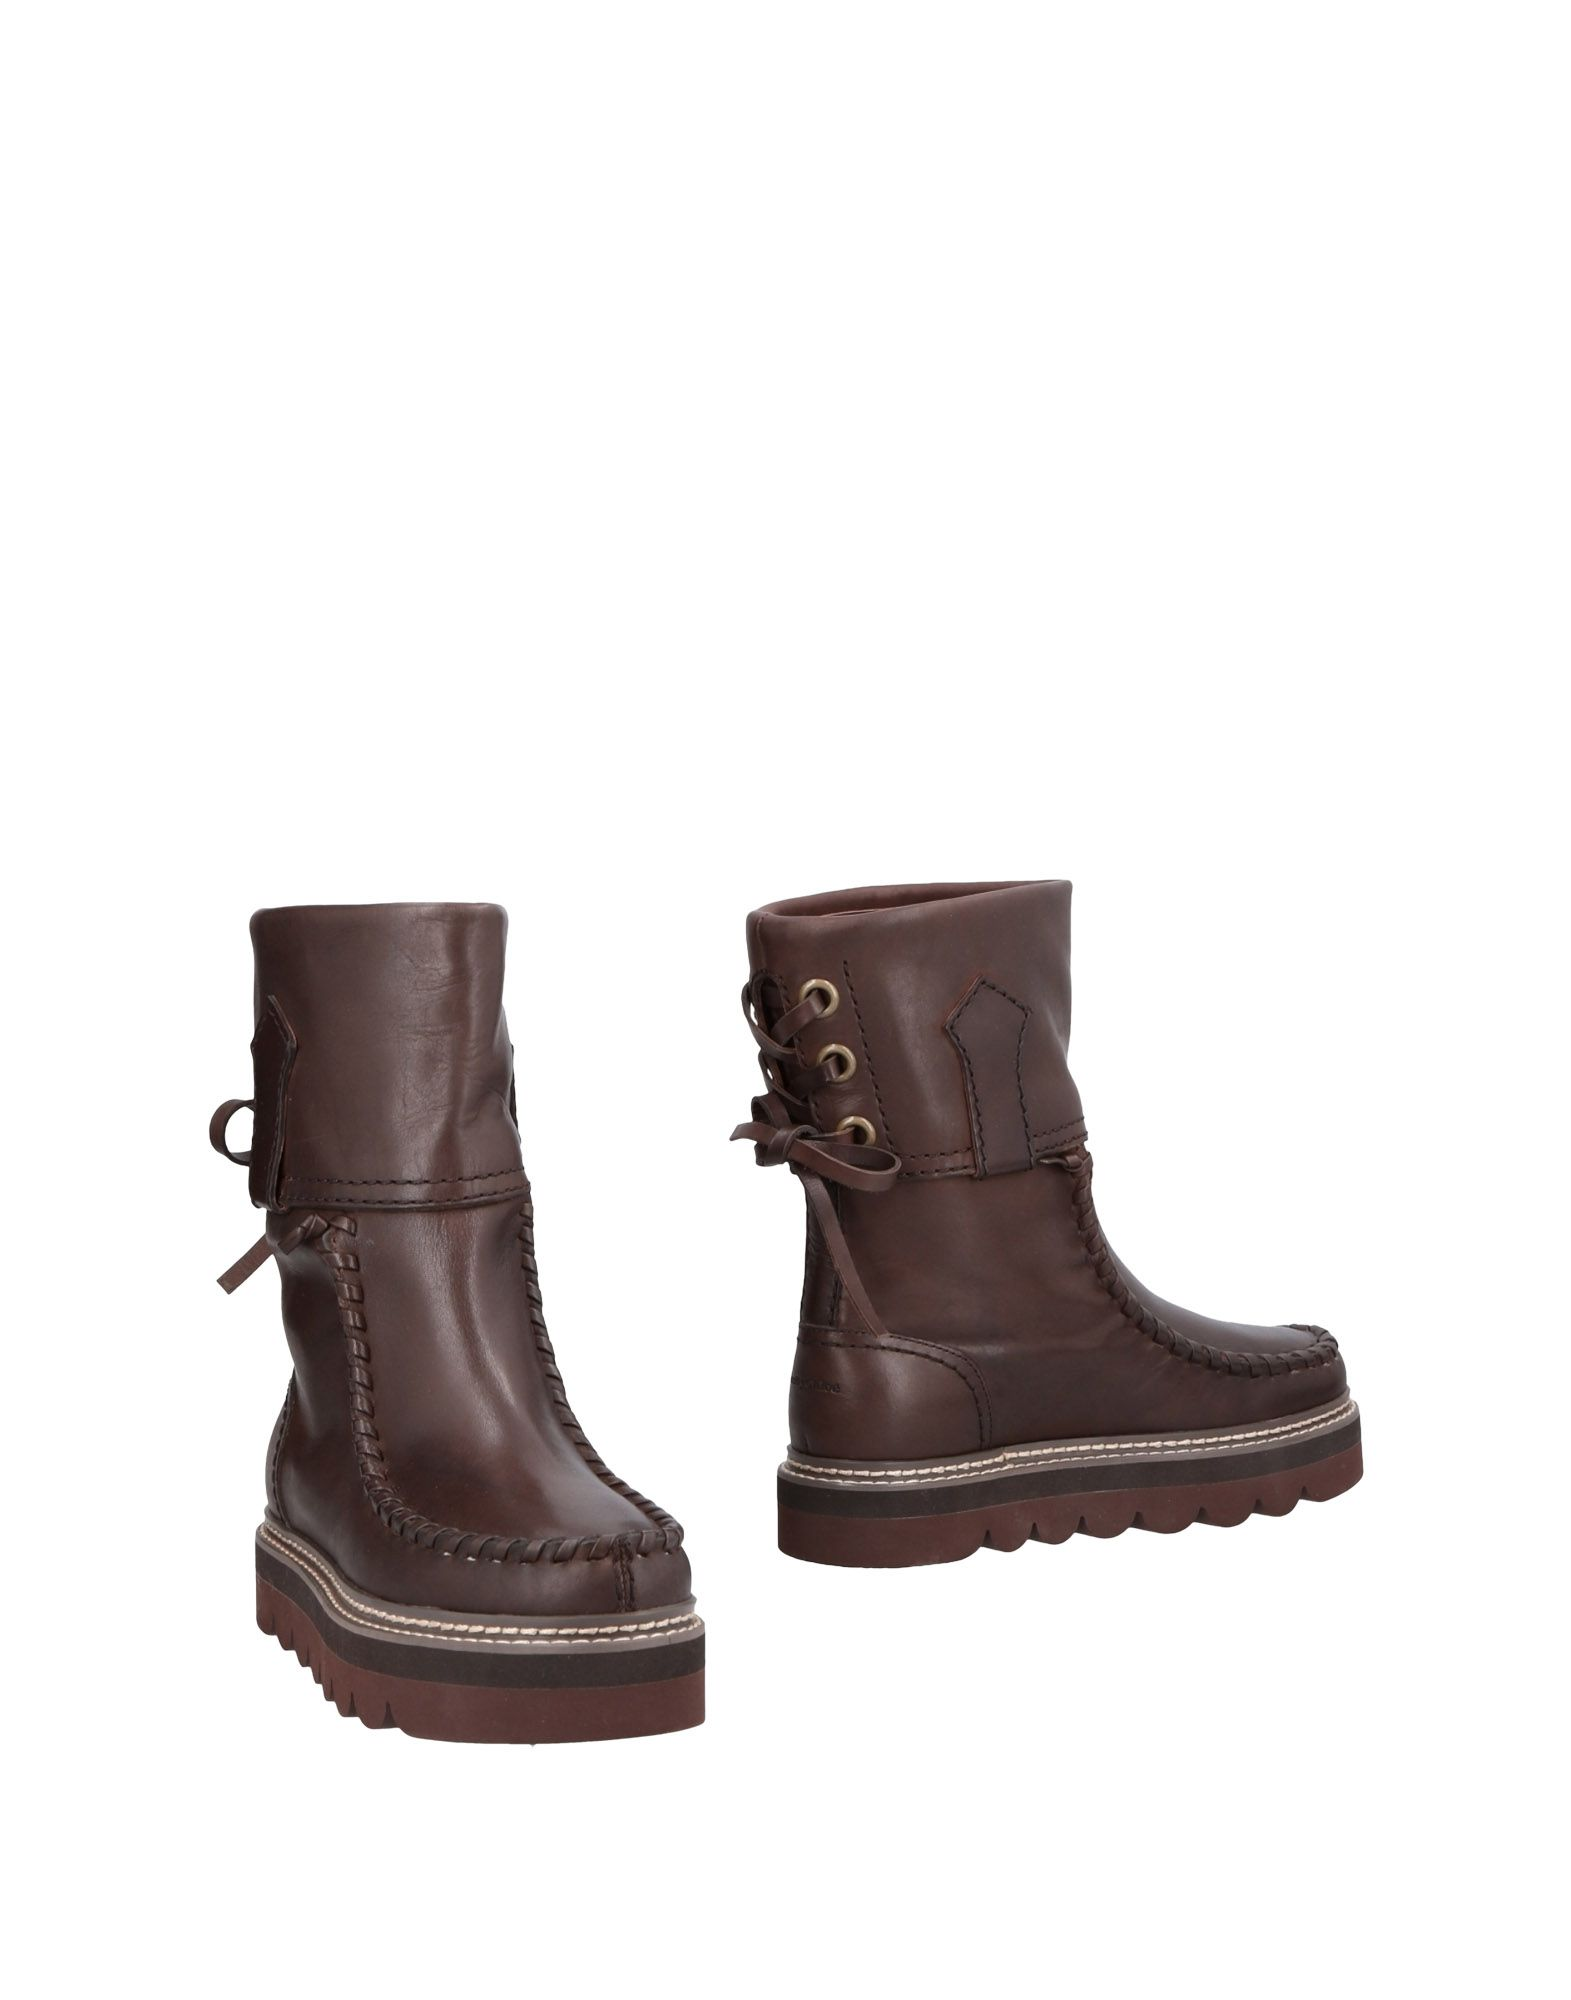 Stivaletti See By Chloé Donna 11483375WX - 11483375WX Donna 750595